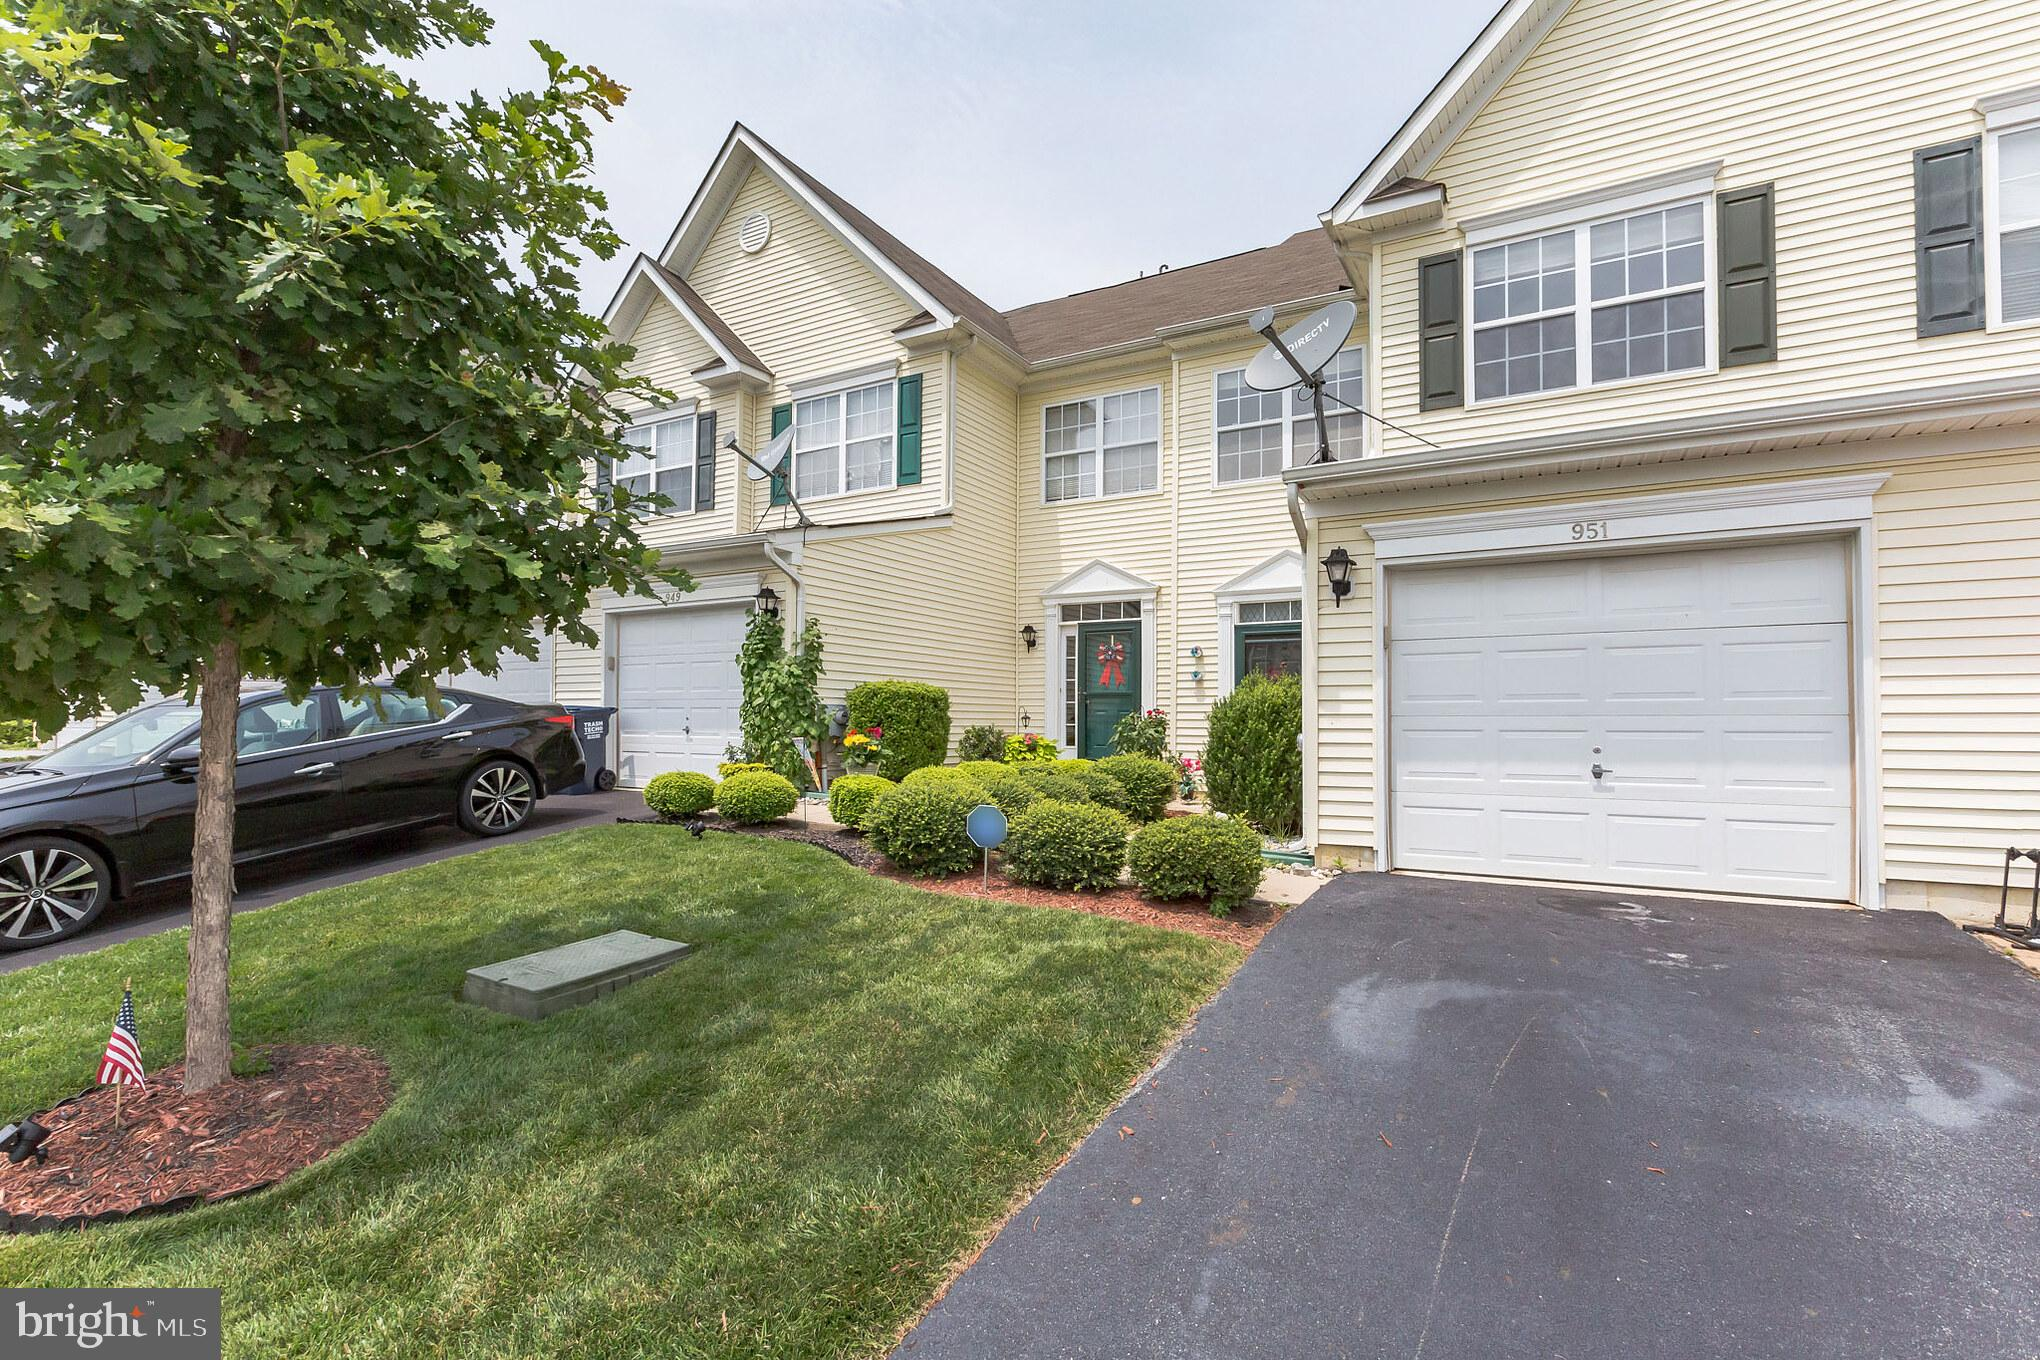 """Wow!!...no stucco!! Beautiful Townhome with vinyl siding and great curb appeal. Upon entering, notice the gleaming wood-like floors leading throughout most of the home. Enjoy preparing meals in the spacious eat-in kitchen, enriched with granite countertops, tile backsplash, stainless steel appliances, 42"""" cabinets, undermount sink, recessed lighting and wood like flooring and opens to the dining area with access to the deck and backyard. Perfect for relaxing or a family bbq. Completing the main floor is a bright spacious living room and a powder room. Retire at the end of the day to the master bedroom with a private bath and walk-in closet. Continuing on the upper level is a convenient second floor laundry room, two additional bedrooms and a main bath. Adventure upstairs to a generously sized multifunctional loft with two ceiling fans, which can be utilized as a 4th bedroom, family room, office or playroom with it's own private full bath. Location is a plus, close to restaurants, coffee shops, gas stations, grocery & liquor stores and more.  Situated just outside the kitchen is a patio furnished with patio set to relax and enjoy a bbq or family dinner.  Included is an Amish built shed for additional storage.  A NEW A/C unit was installed last year. Route 1 for easy access to DE Beaches and I-95 to Wilmington, Philadelphia and New Jersey. Hurry book your tour today!"""